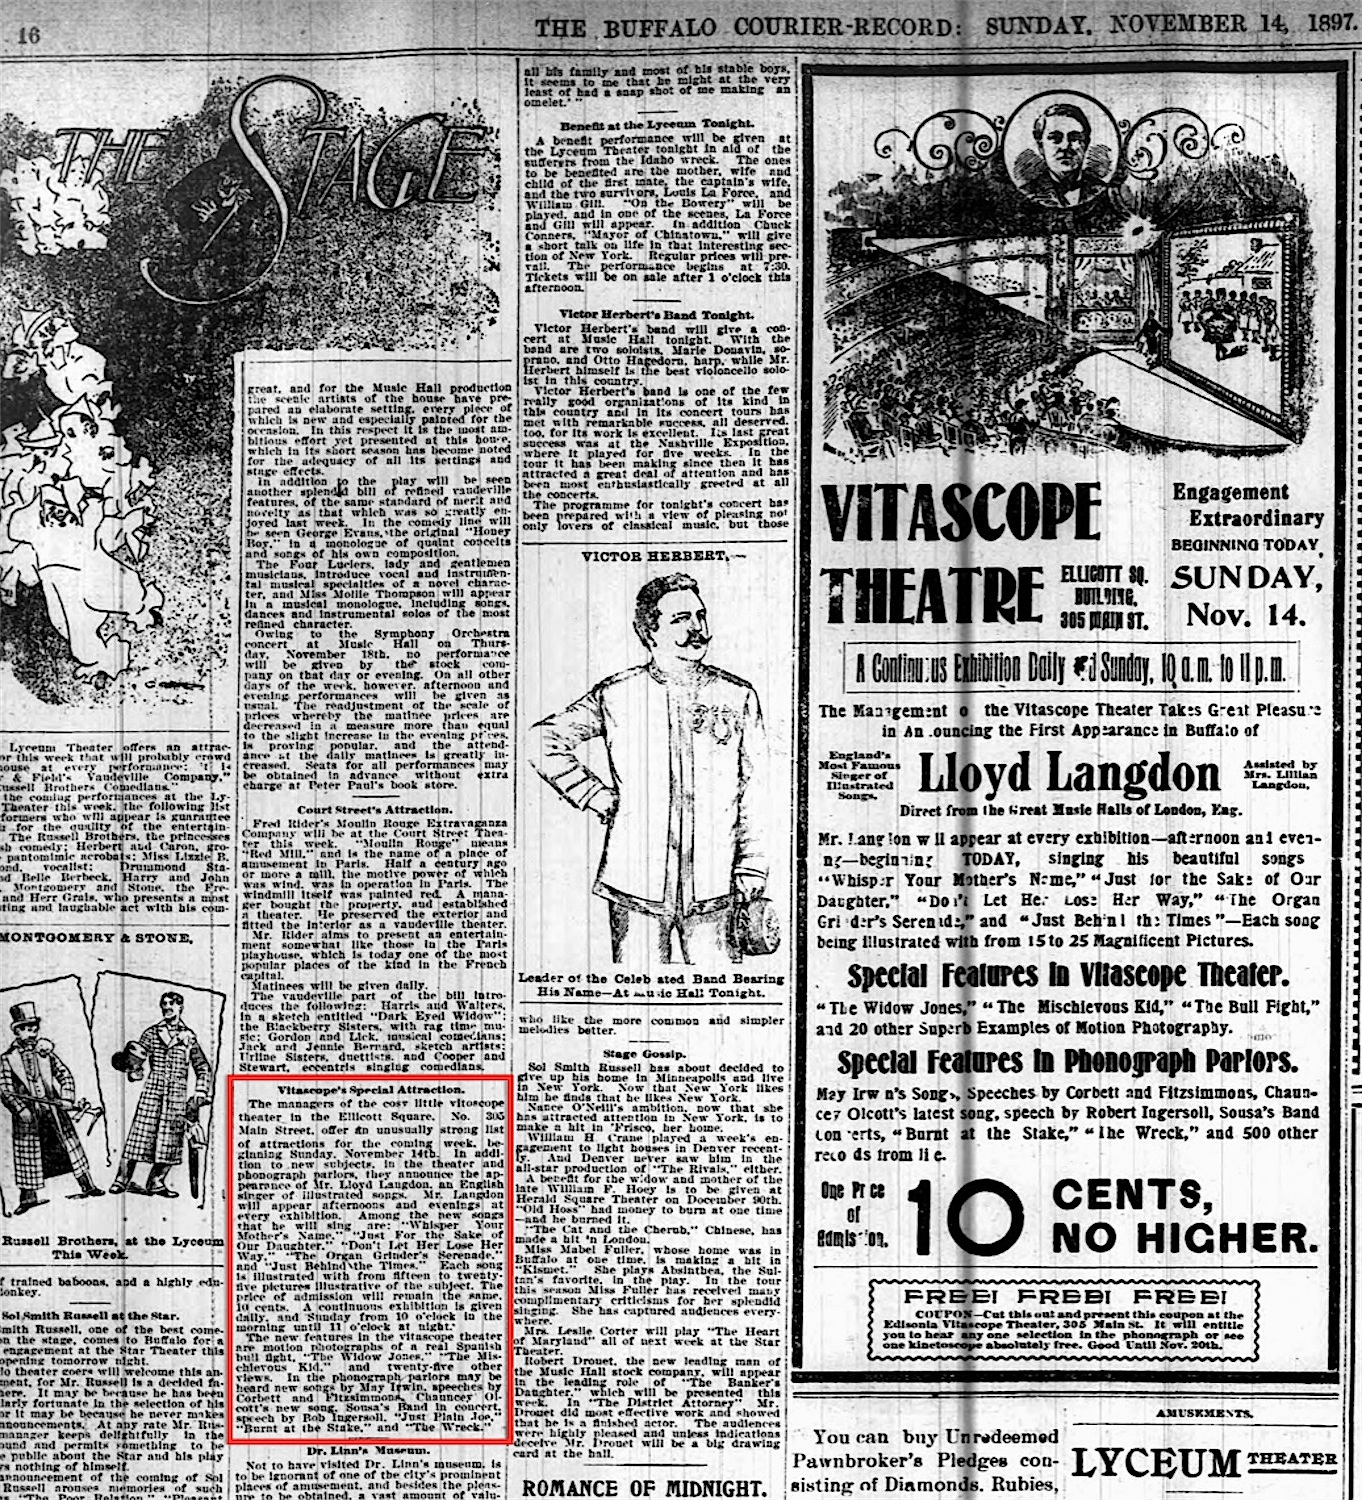 File:Vitascope Theatre advertisement and article, The